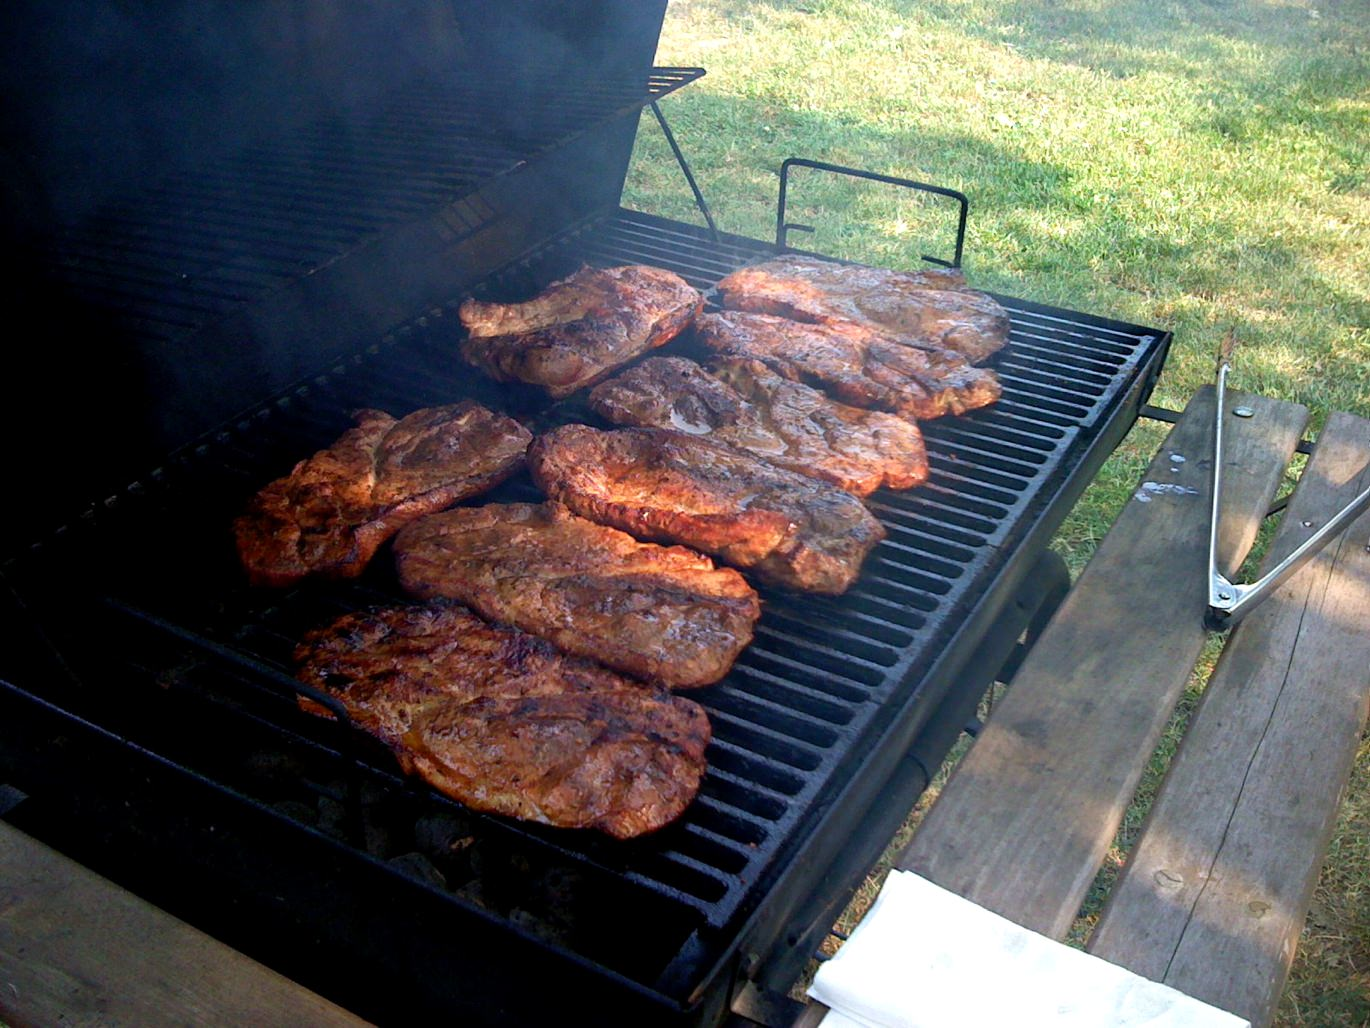 Grilling pork steaks